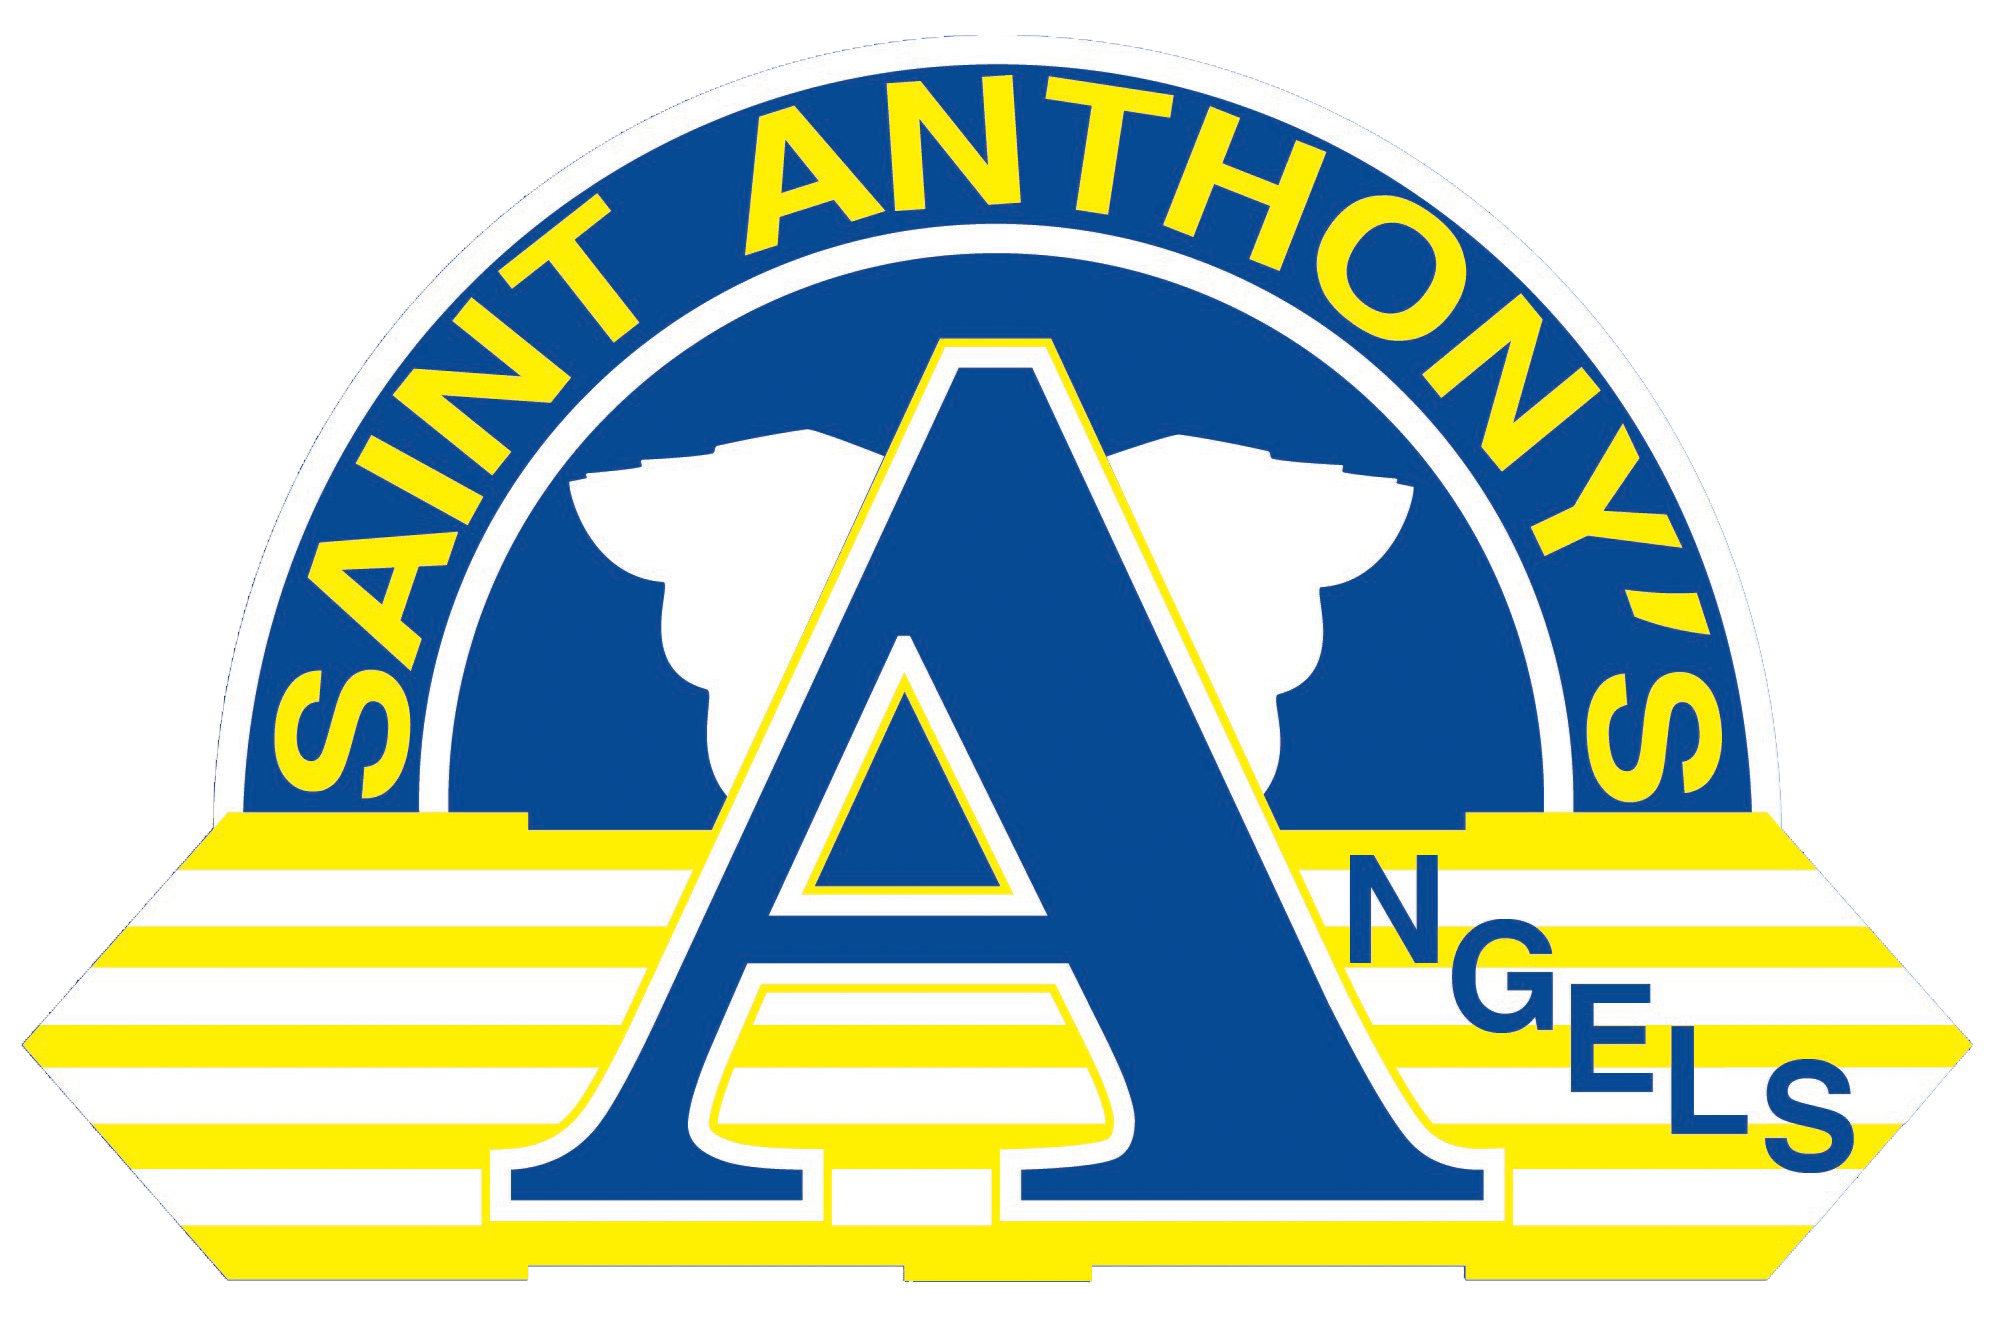 St. Anthony's Elementary School